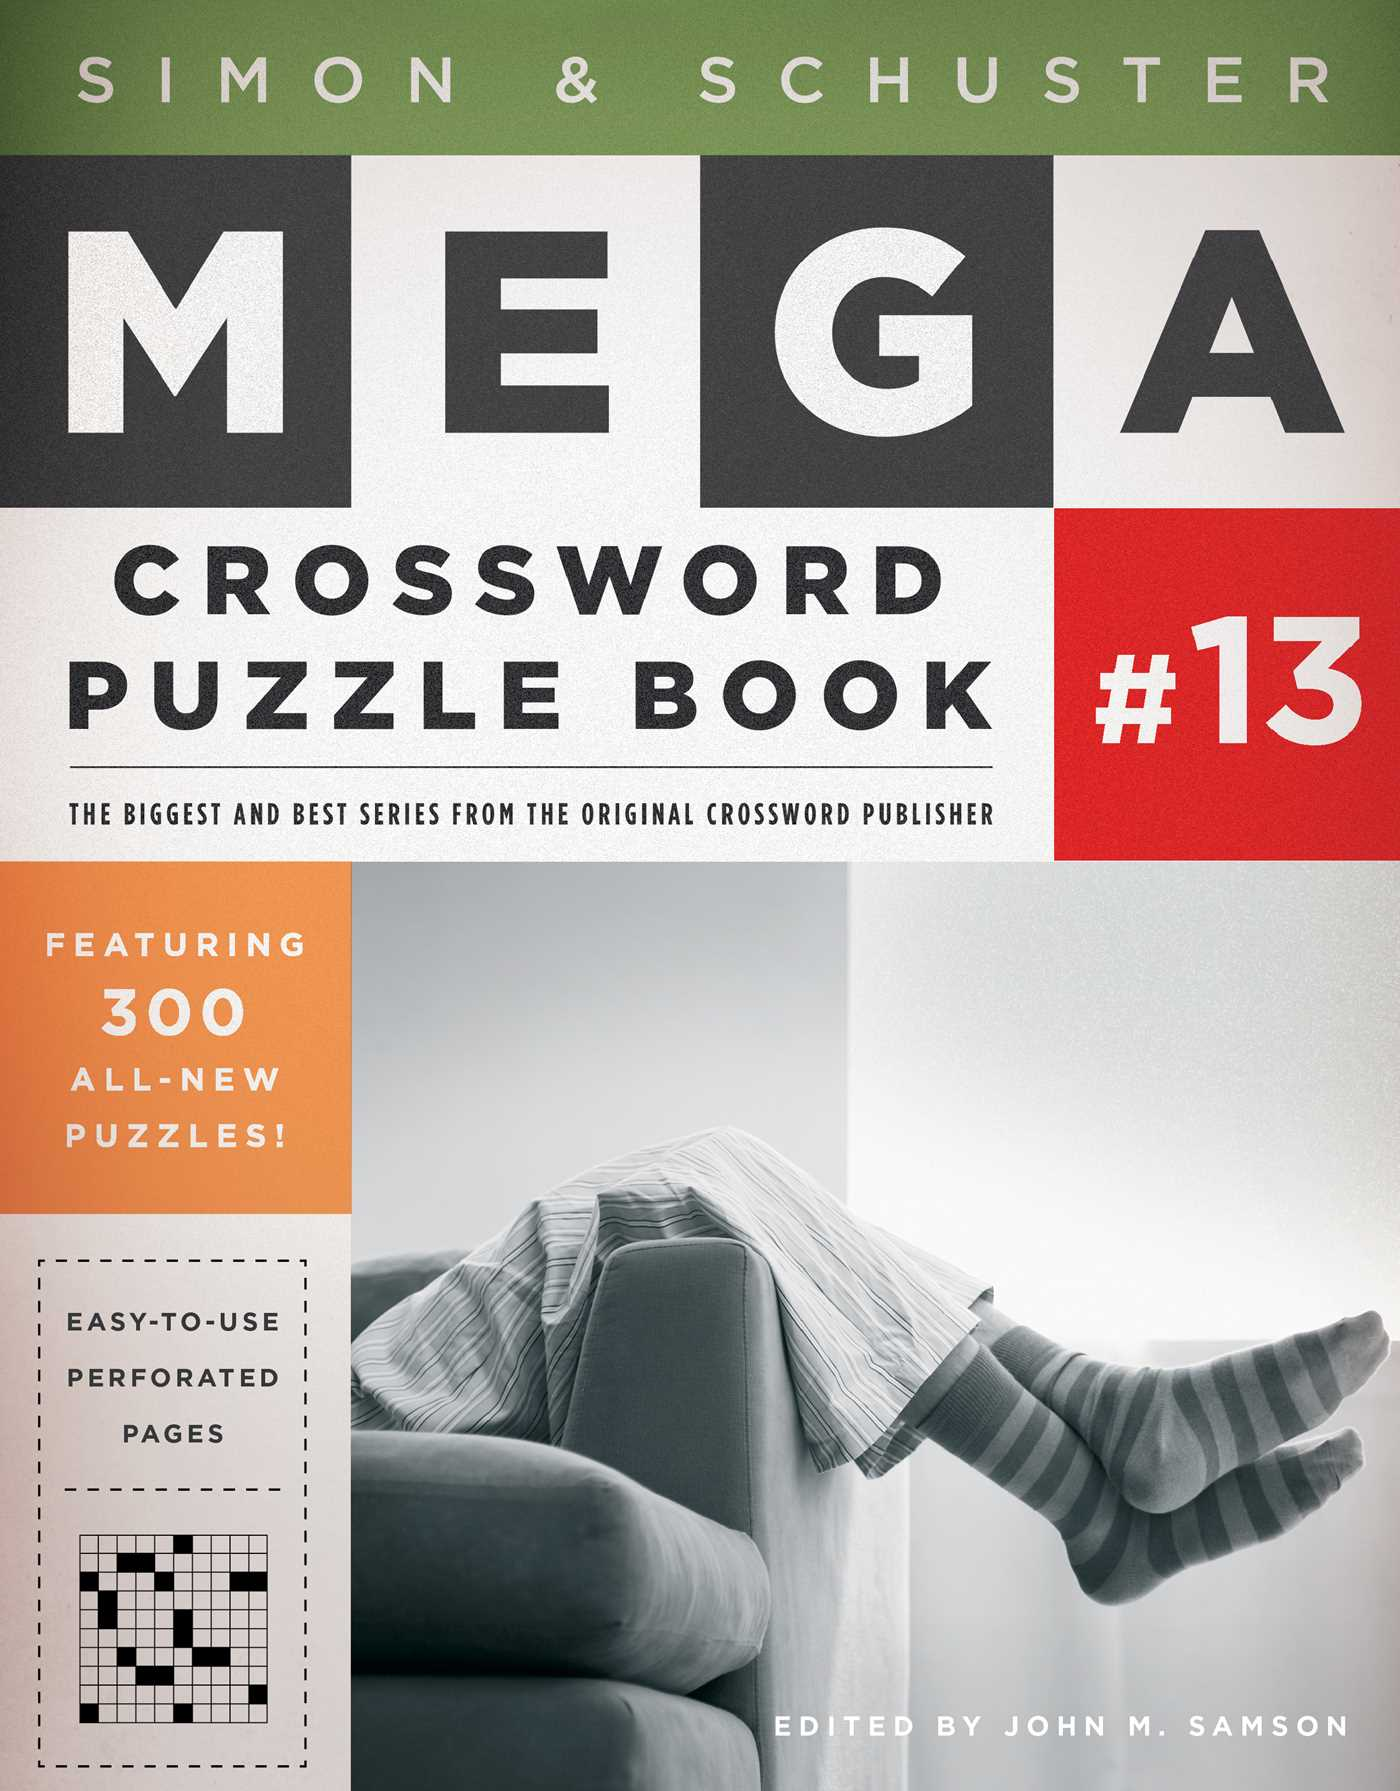 Simon schuster mega crossword puzzle book 13 9781451688016 hr